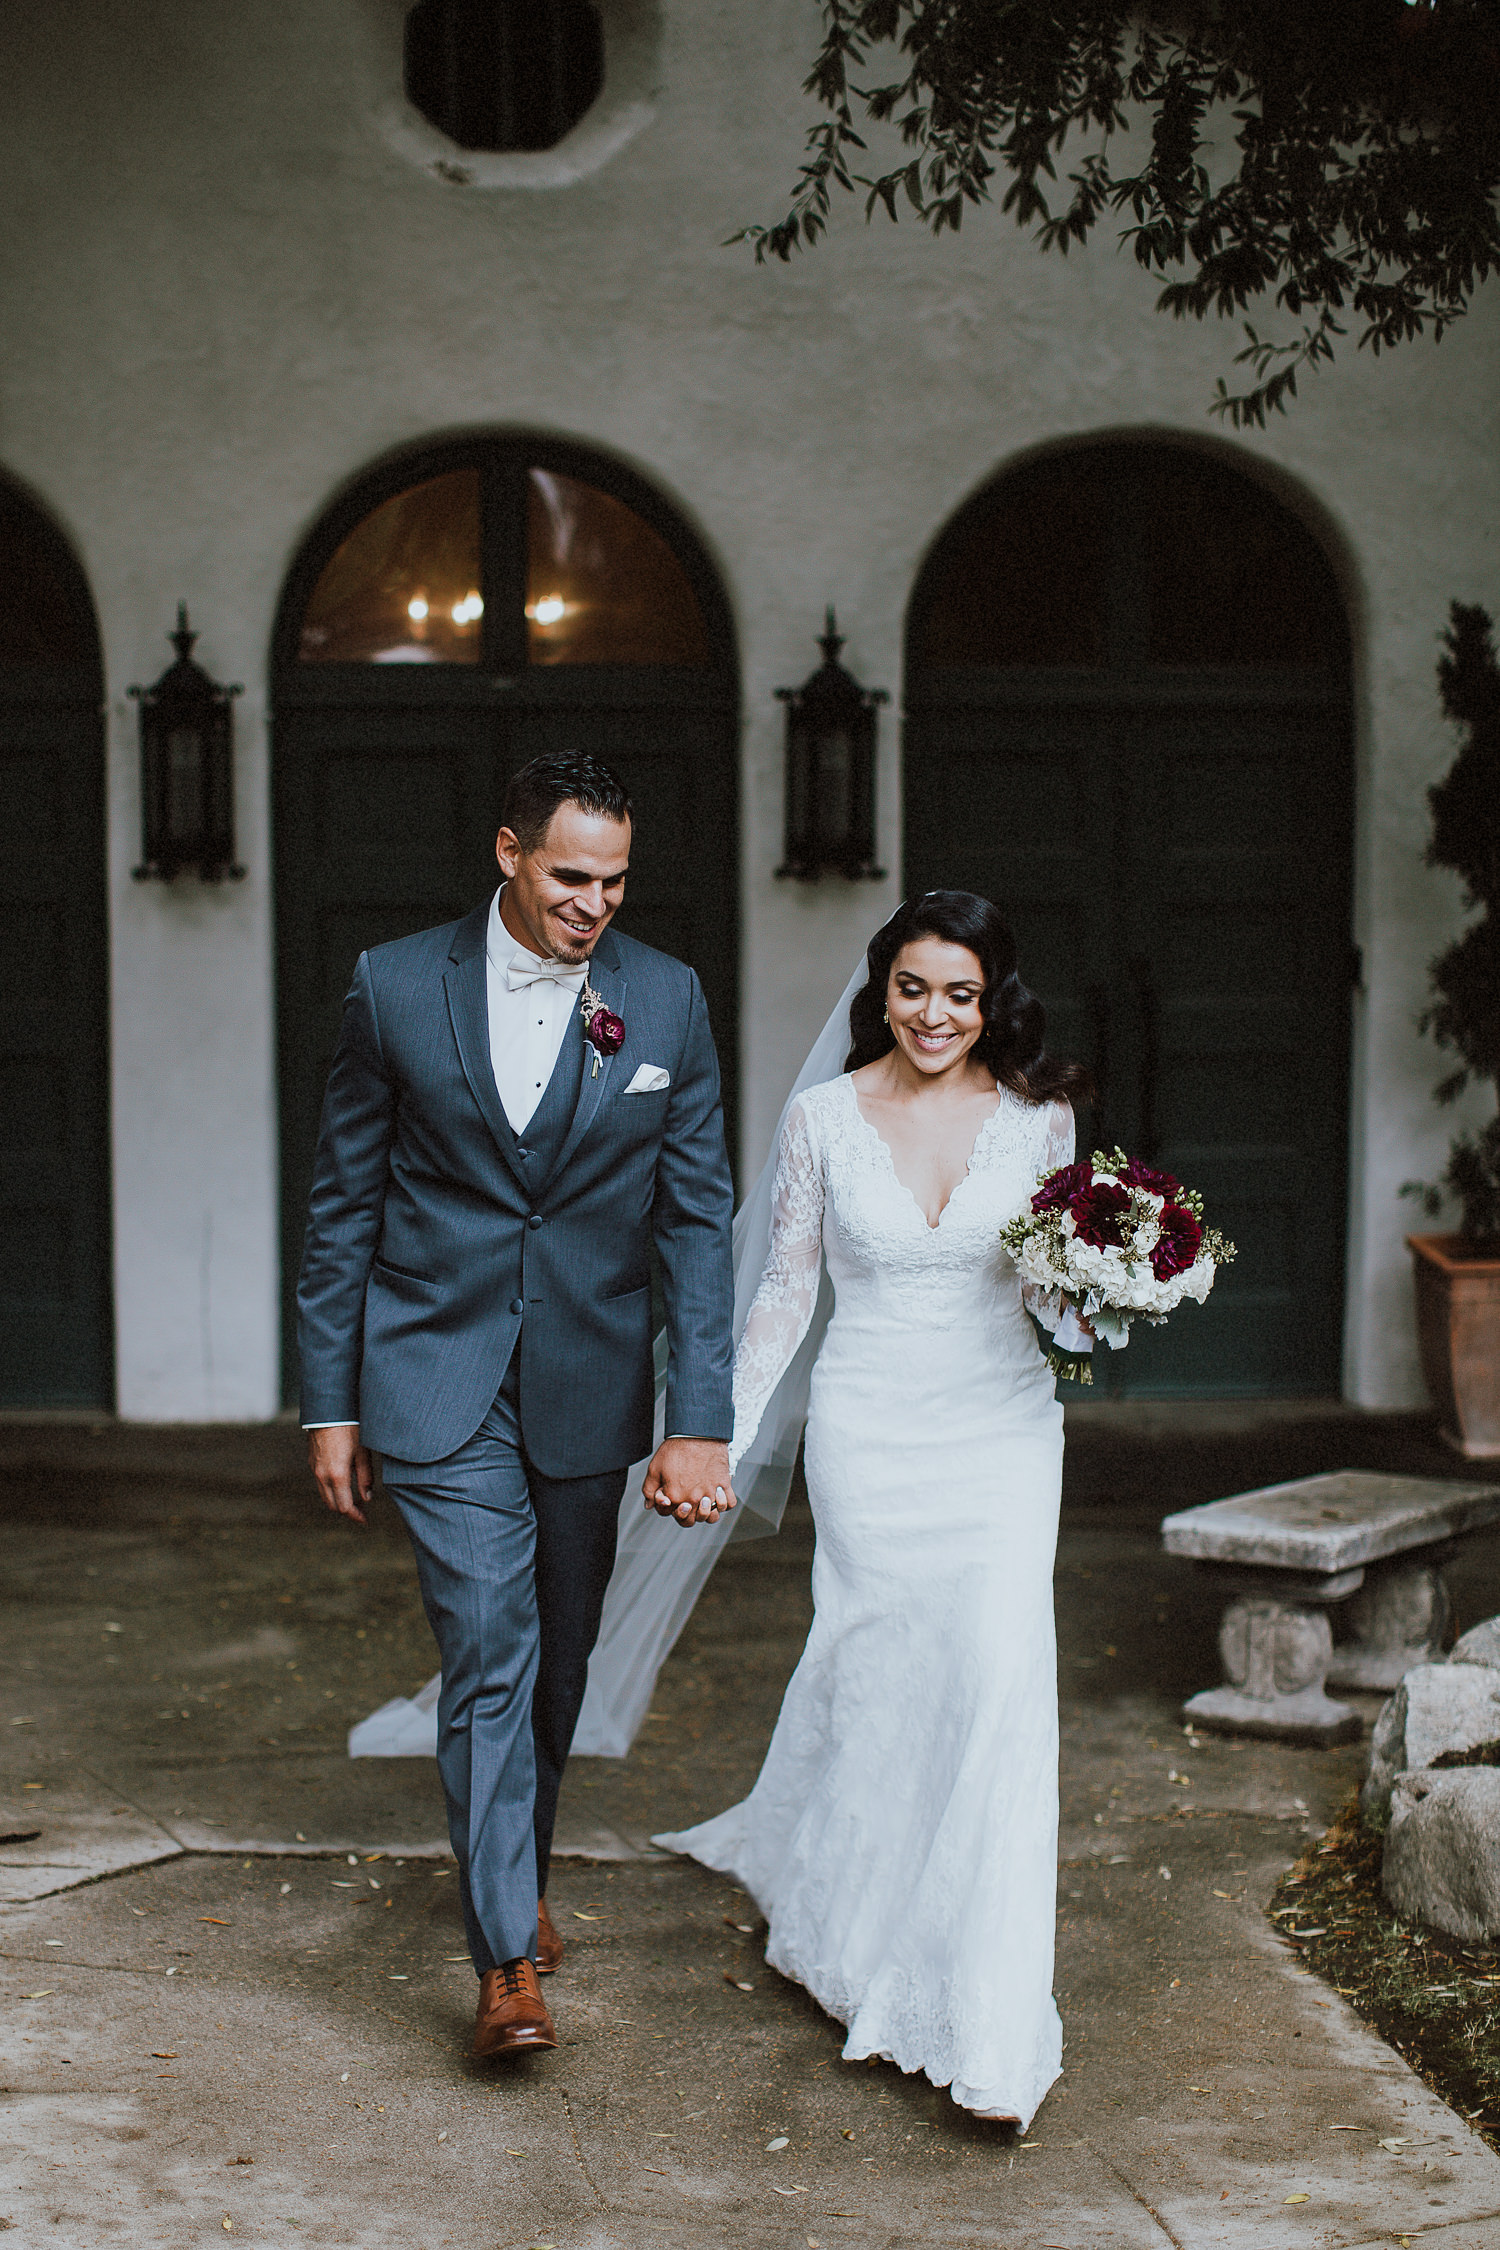 justin + celene | La Cañada Flintridge Wedding